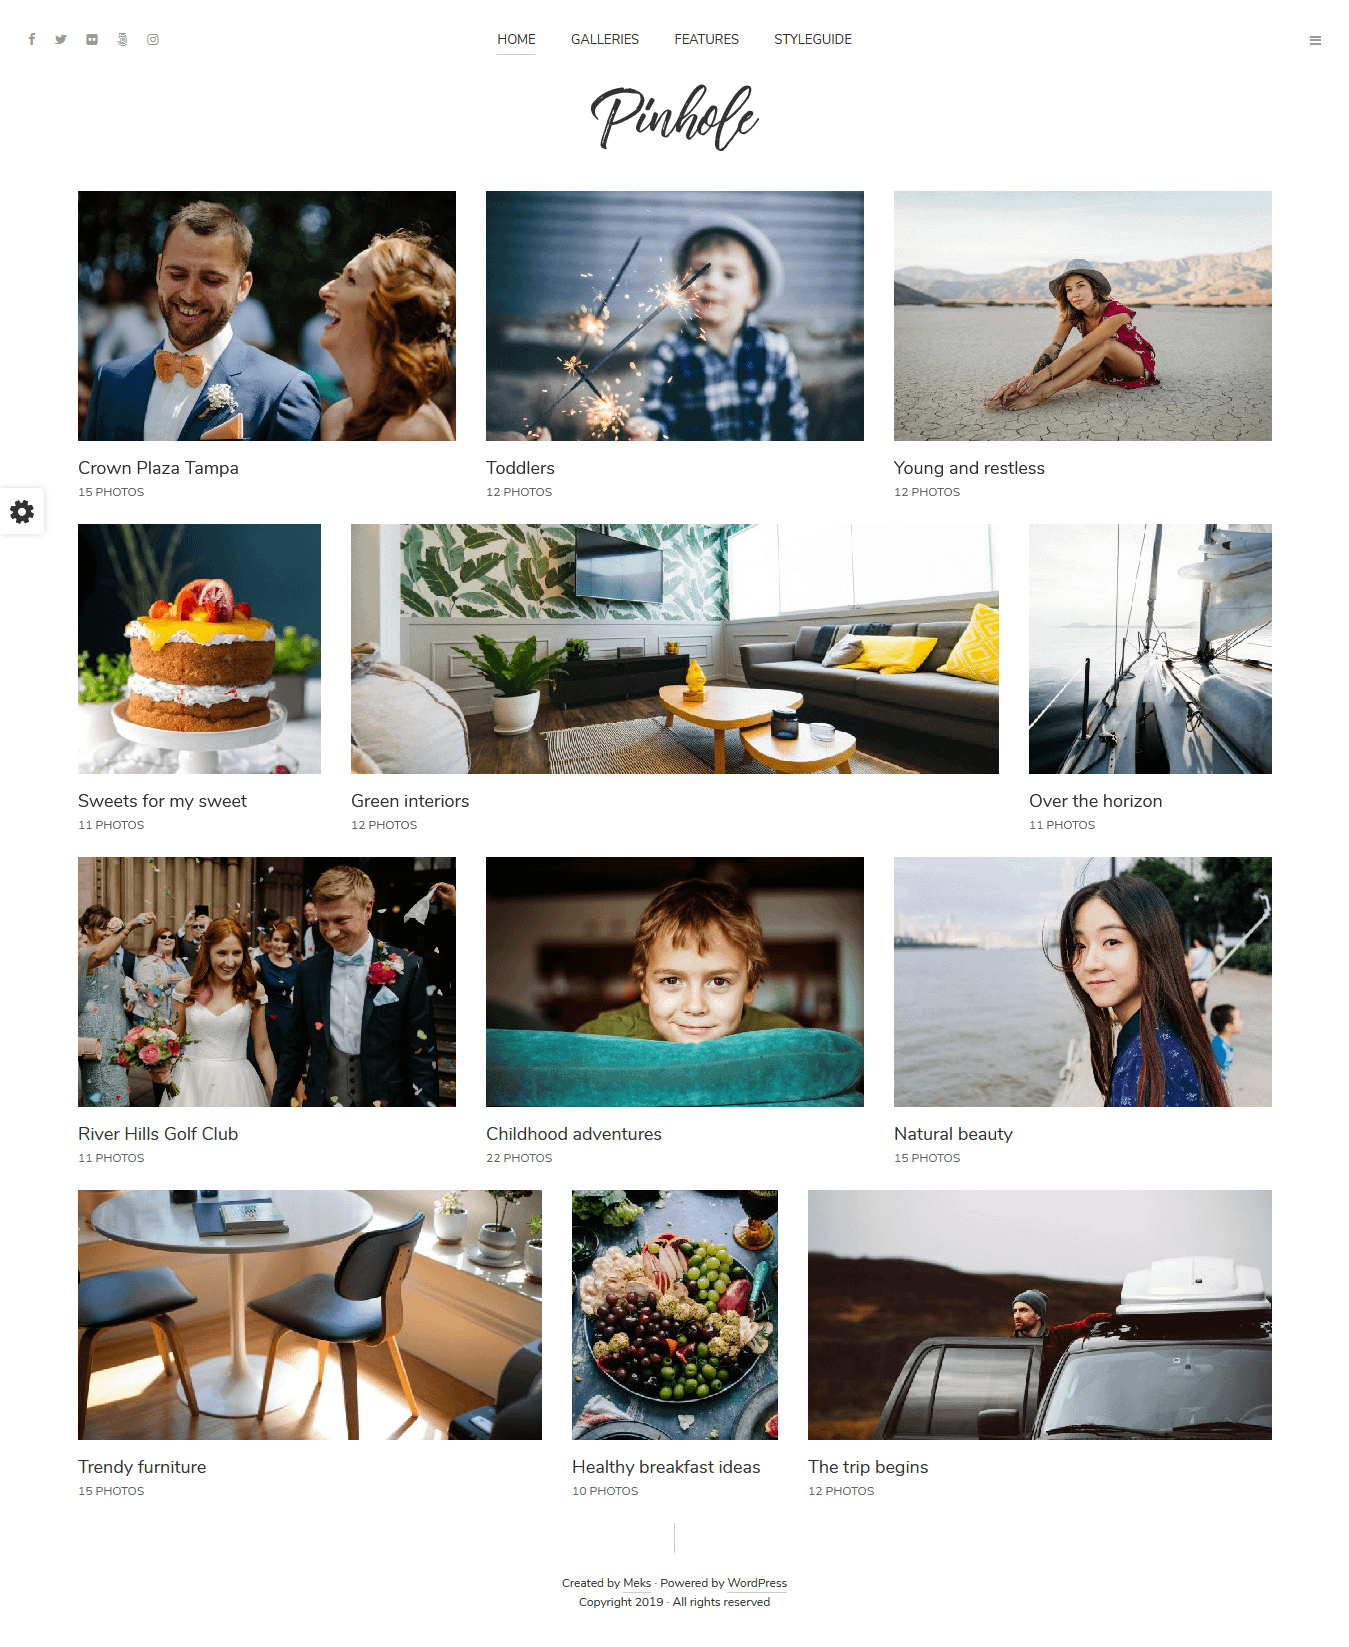 Pinhole - Best Premium Gallery WordPress Theme